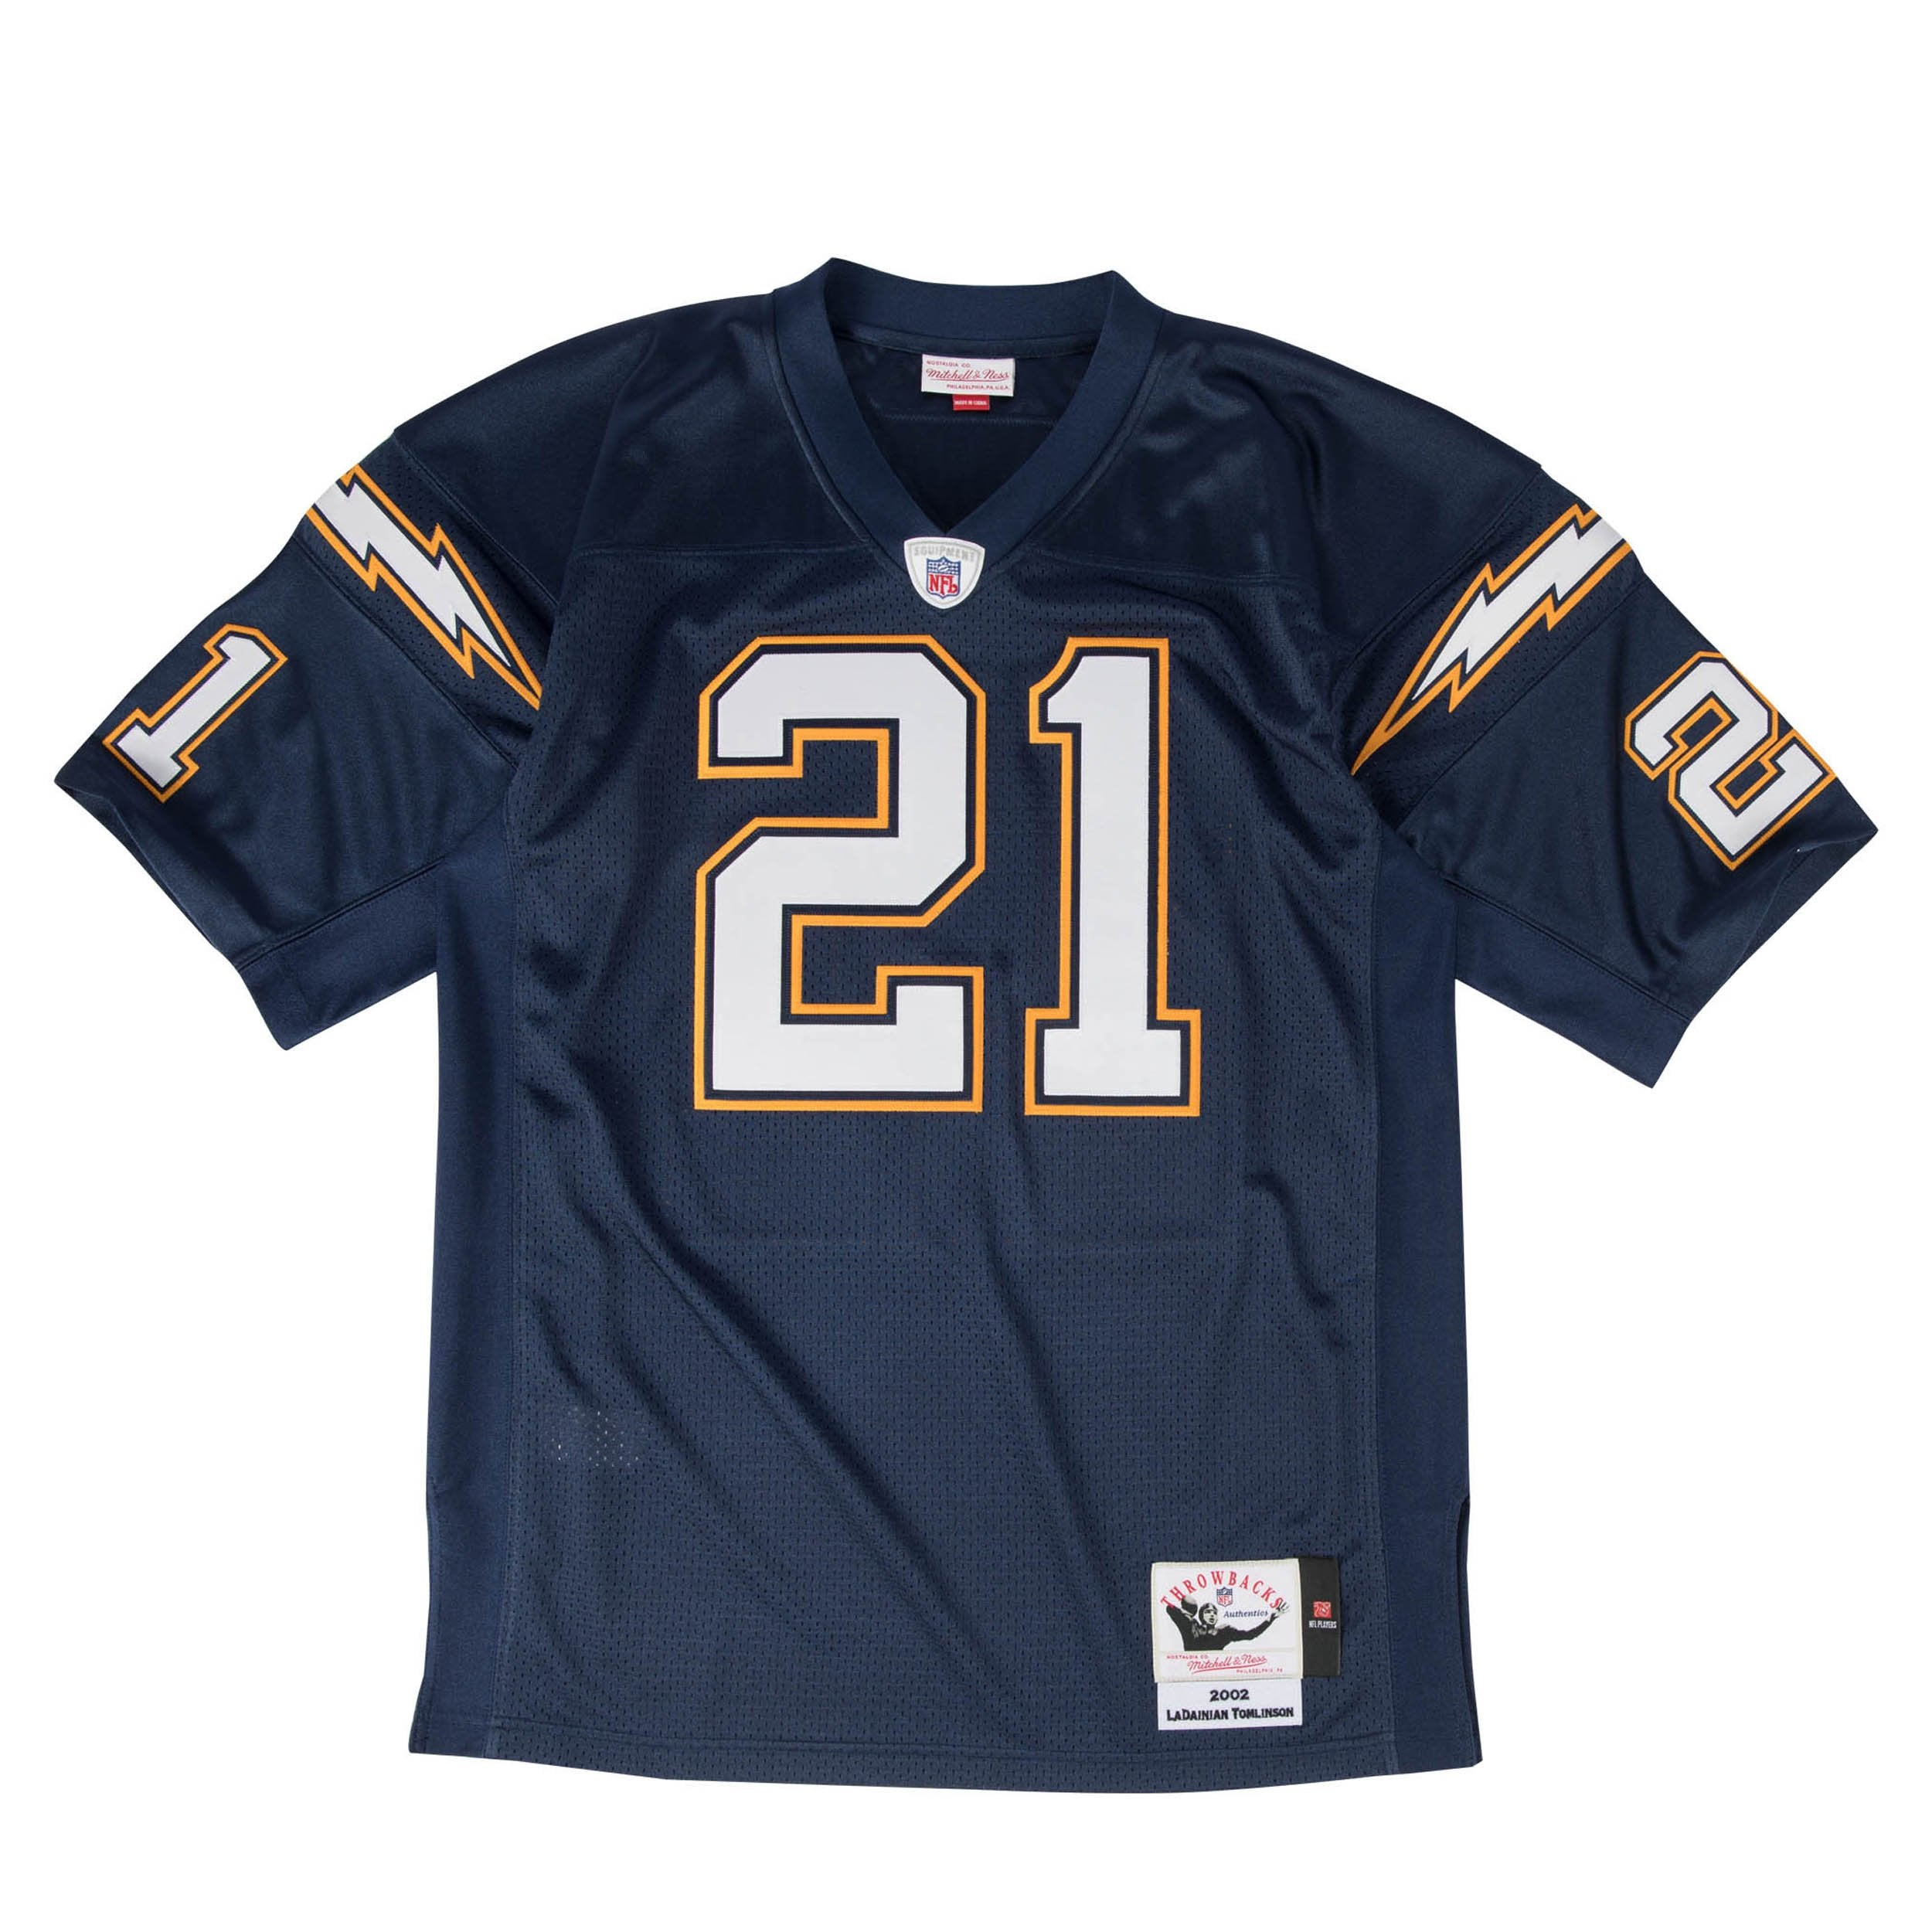 separation shoes ab2eb beba7 Mitchell & Ness LaDainian Tomlinson Authentic Jersey 2002 San Diego Chargers